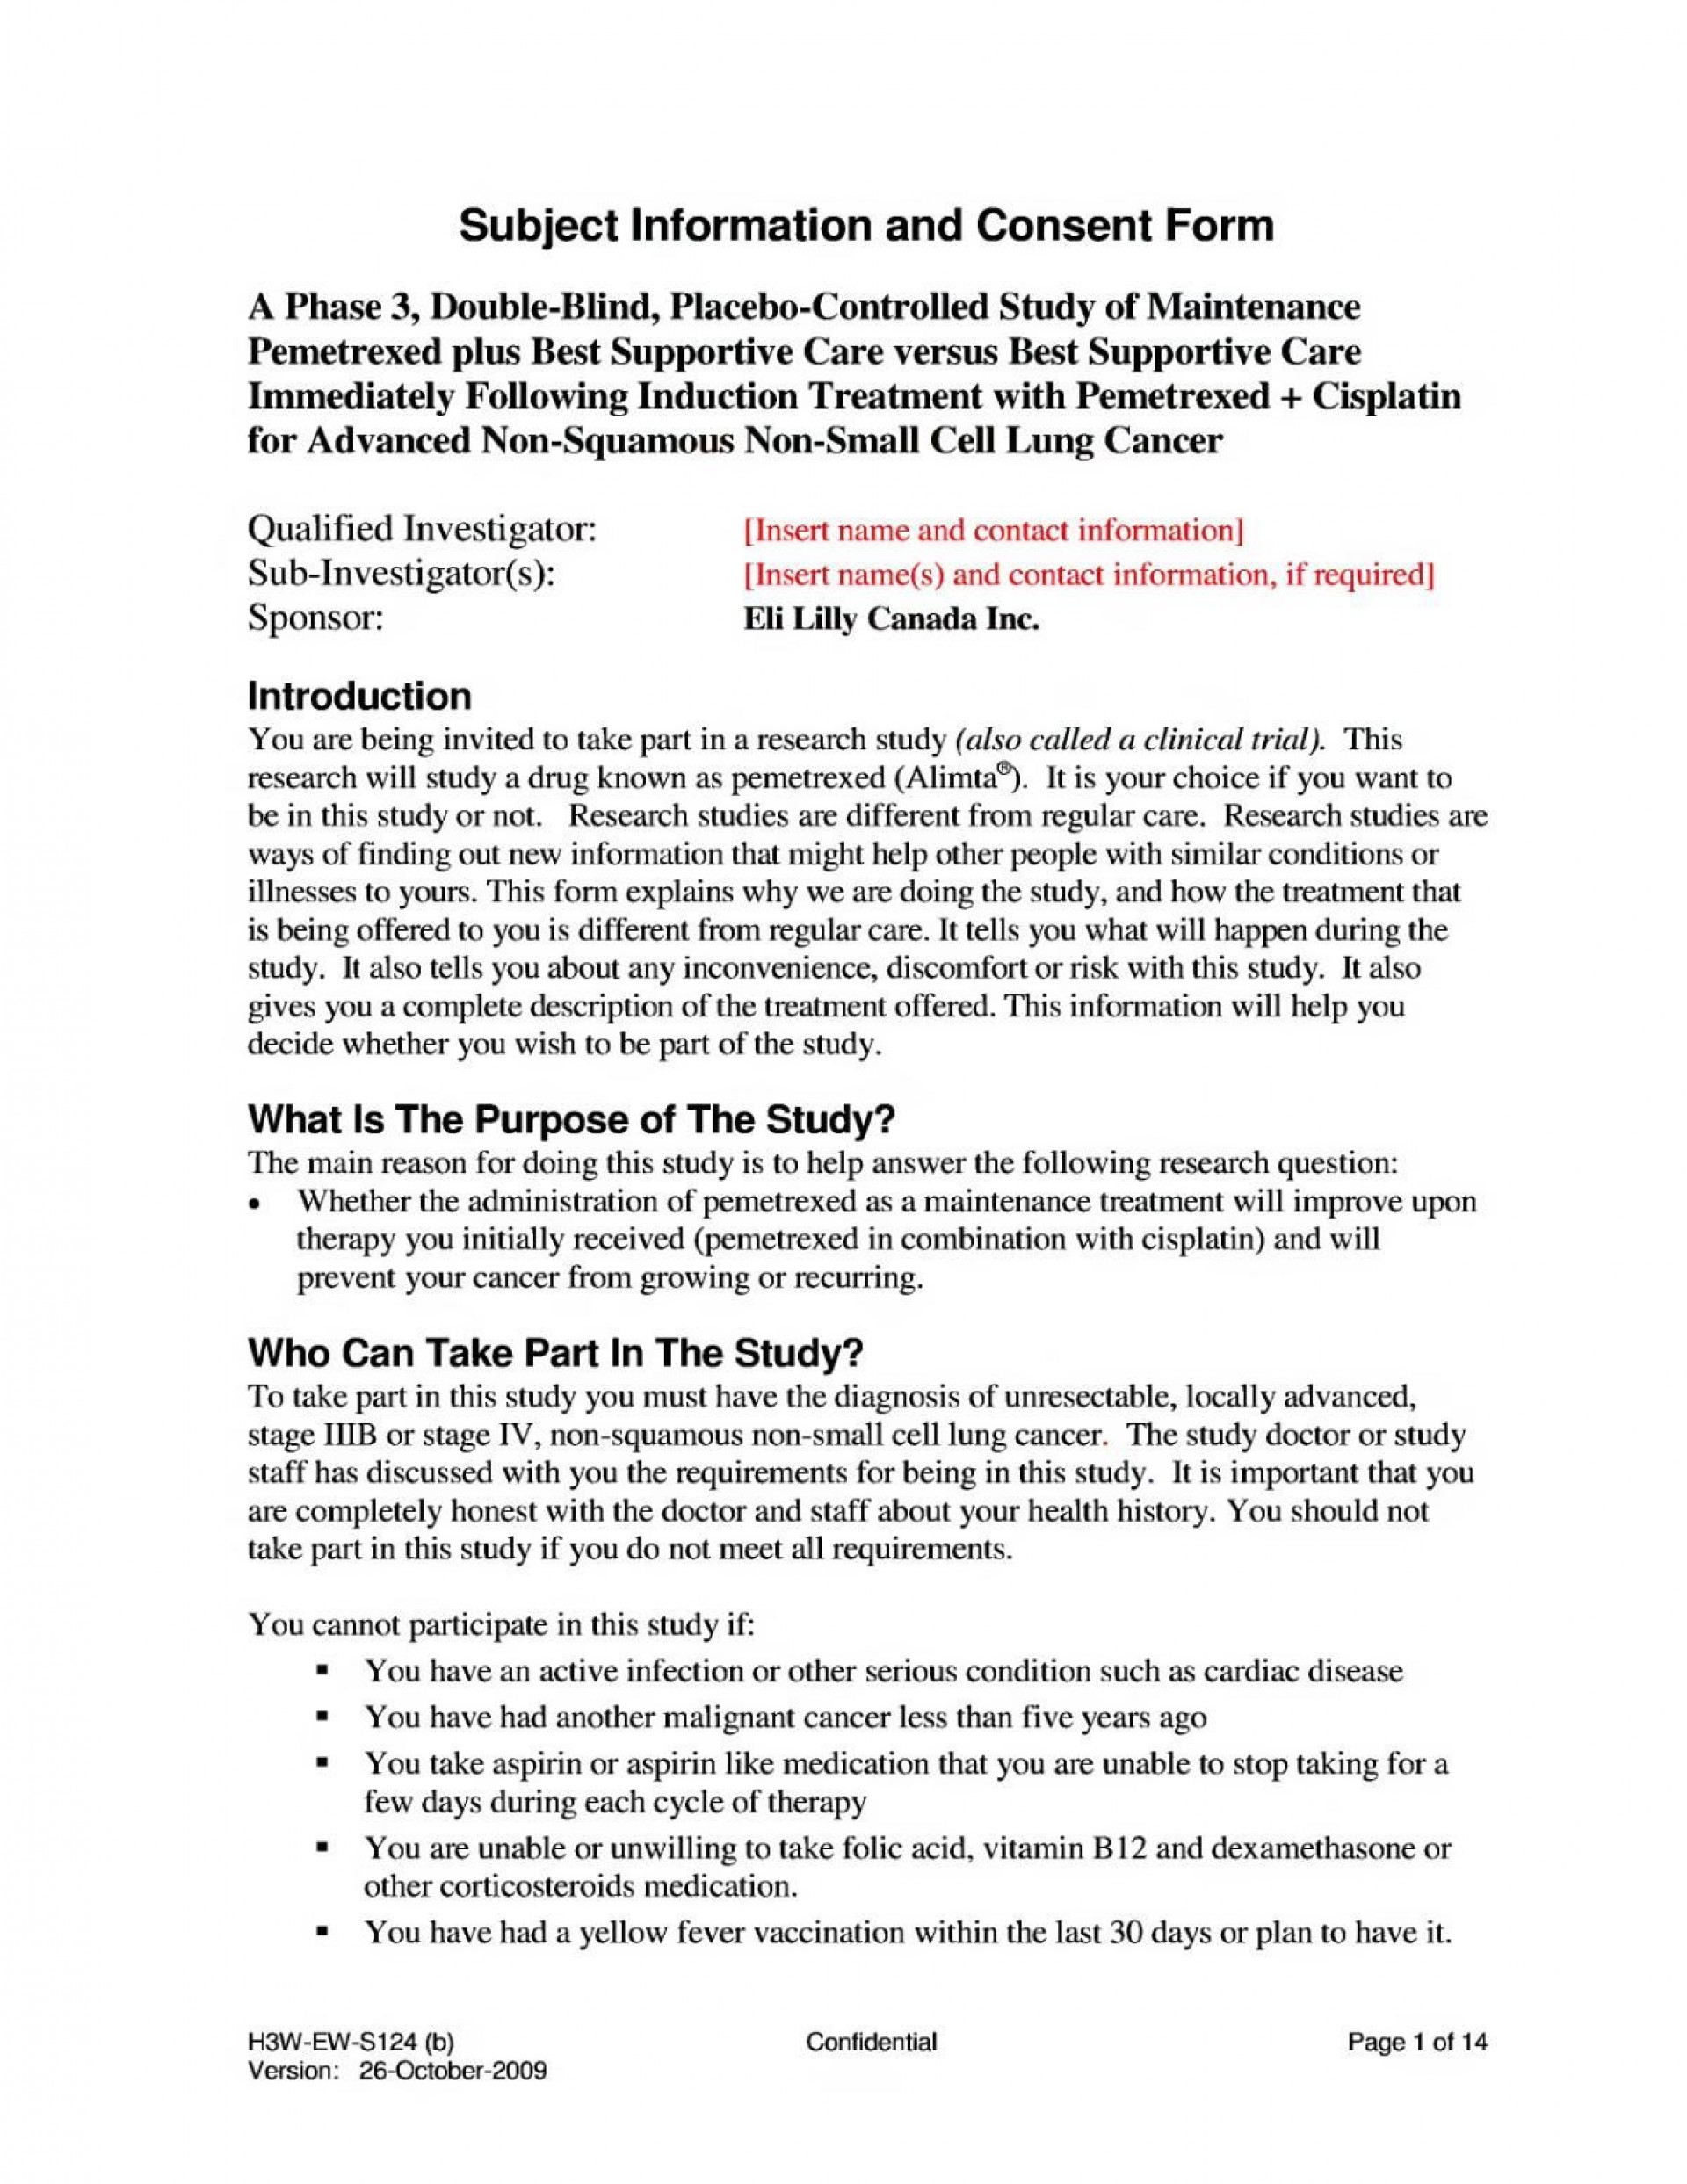 007 Wondrou Medical Consent Form Template Image  Templates Informed Sample South Africa Treatment1920